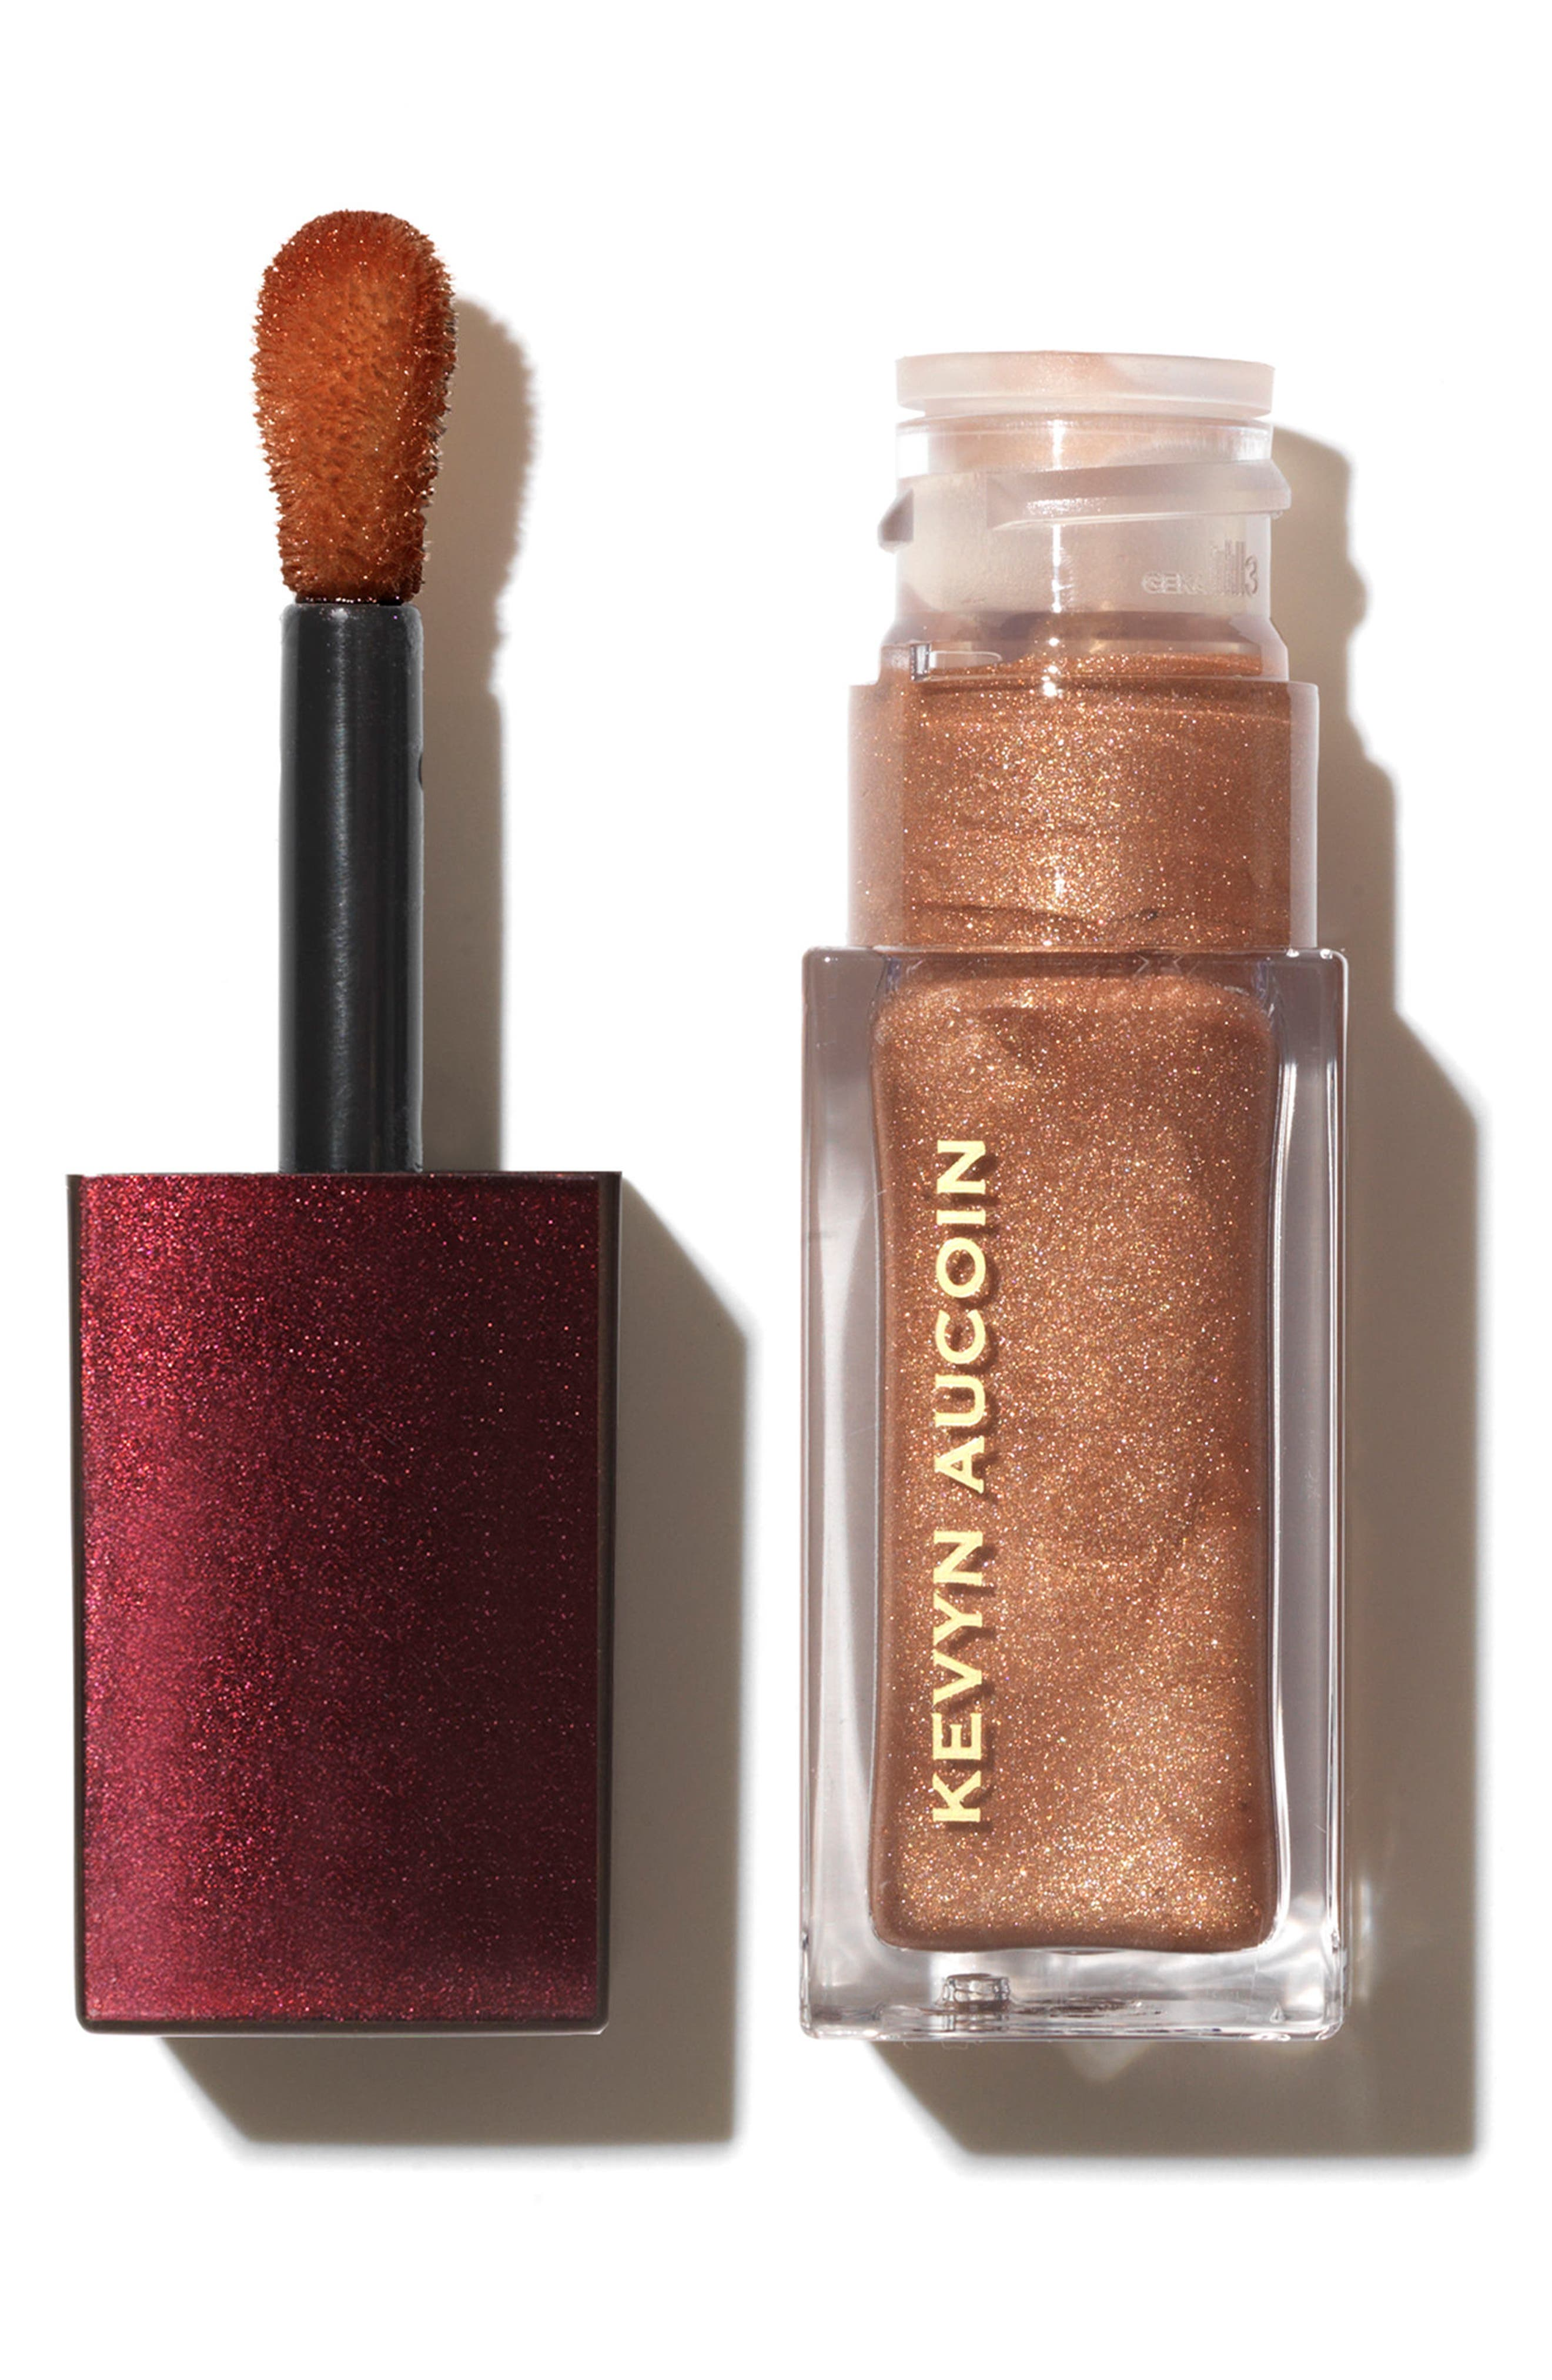 SPACE.NK.apothecary Kevyn Aucoin Beauty The Lip Gloss